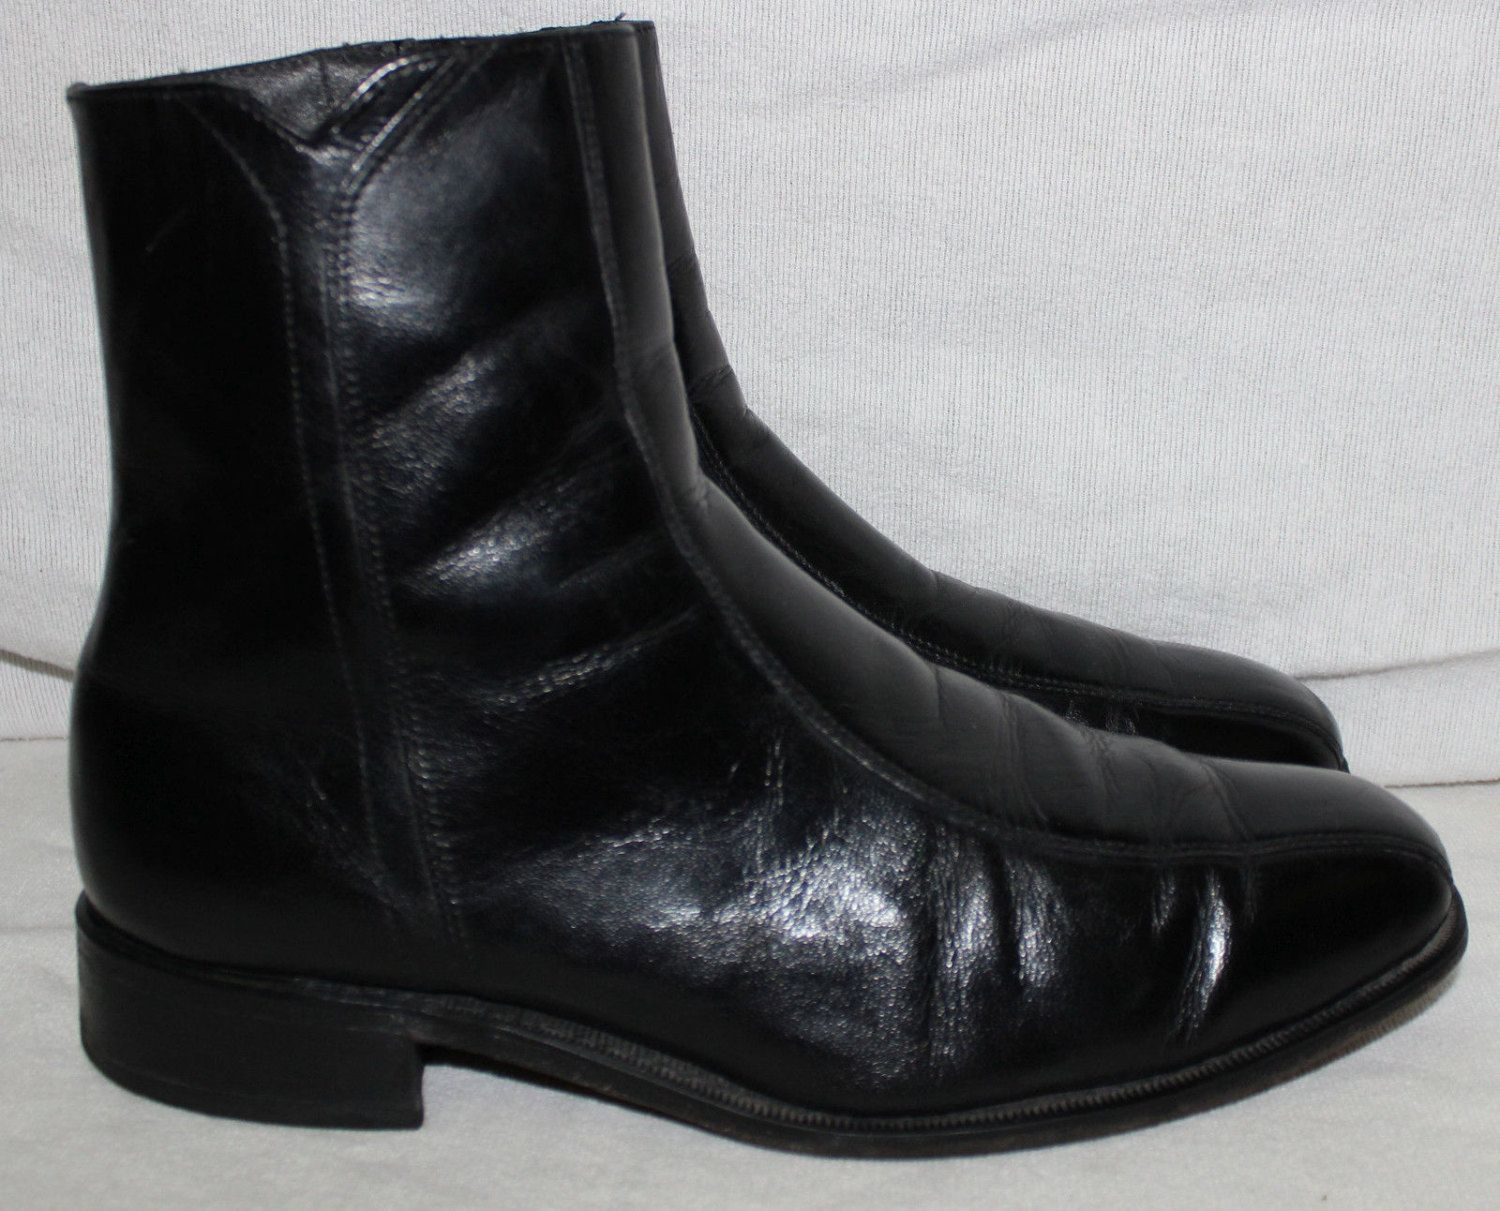 Florsheim Boots Black Leather 10 3E Extra Wide Motorcycle Hipster ...